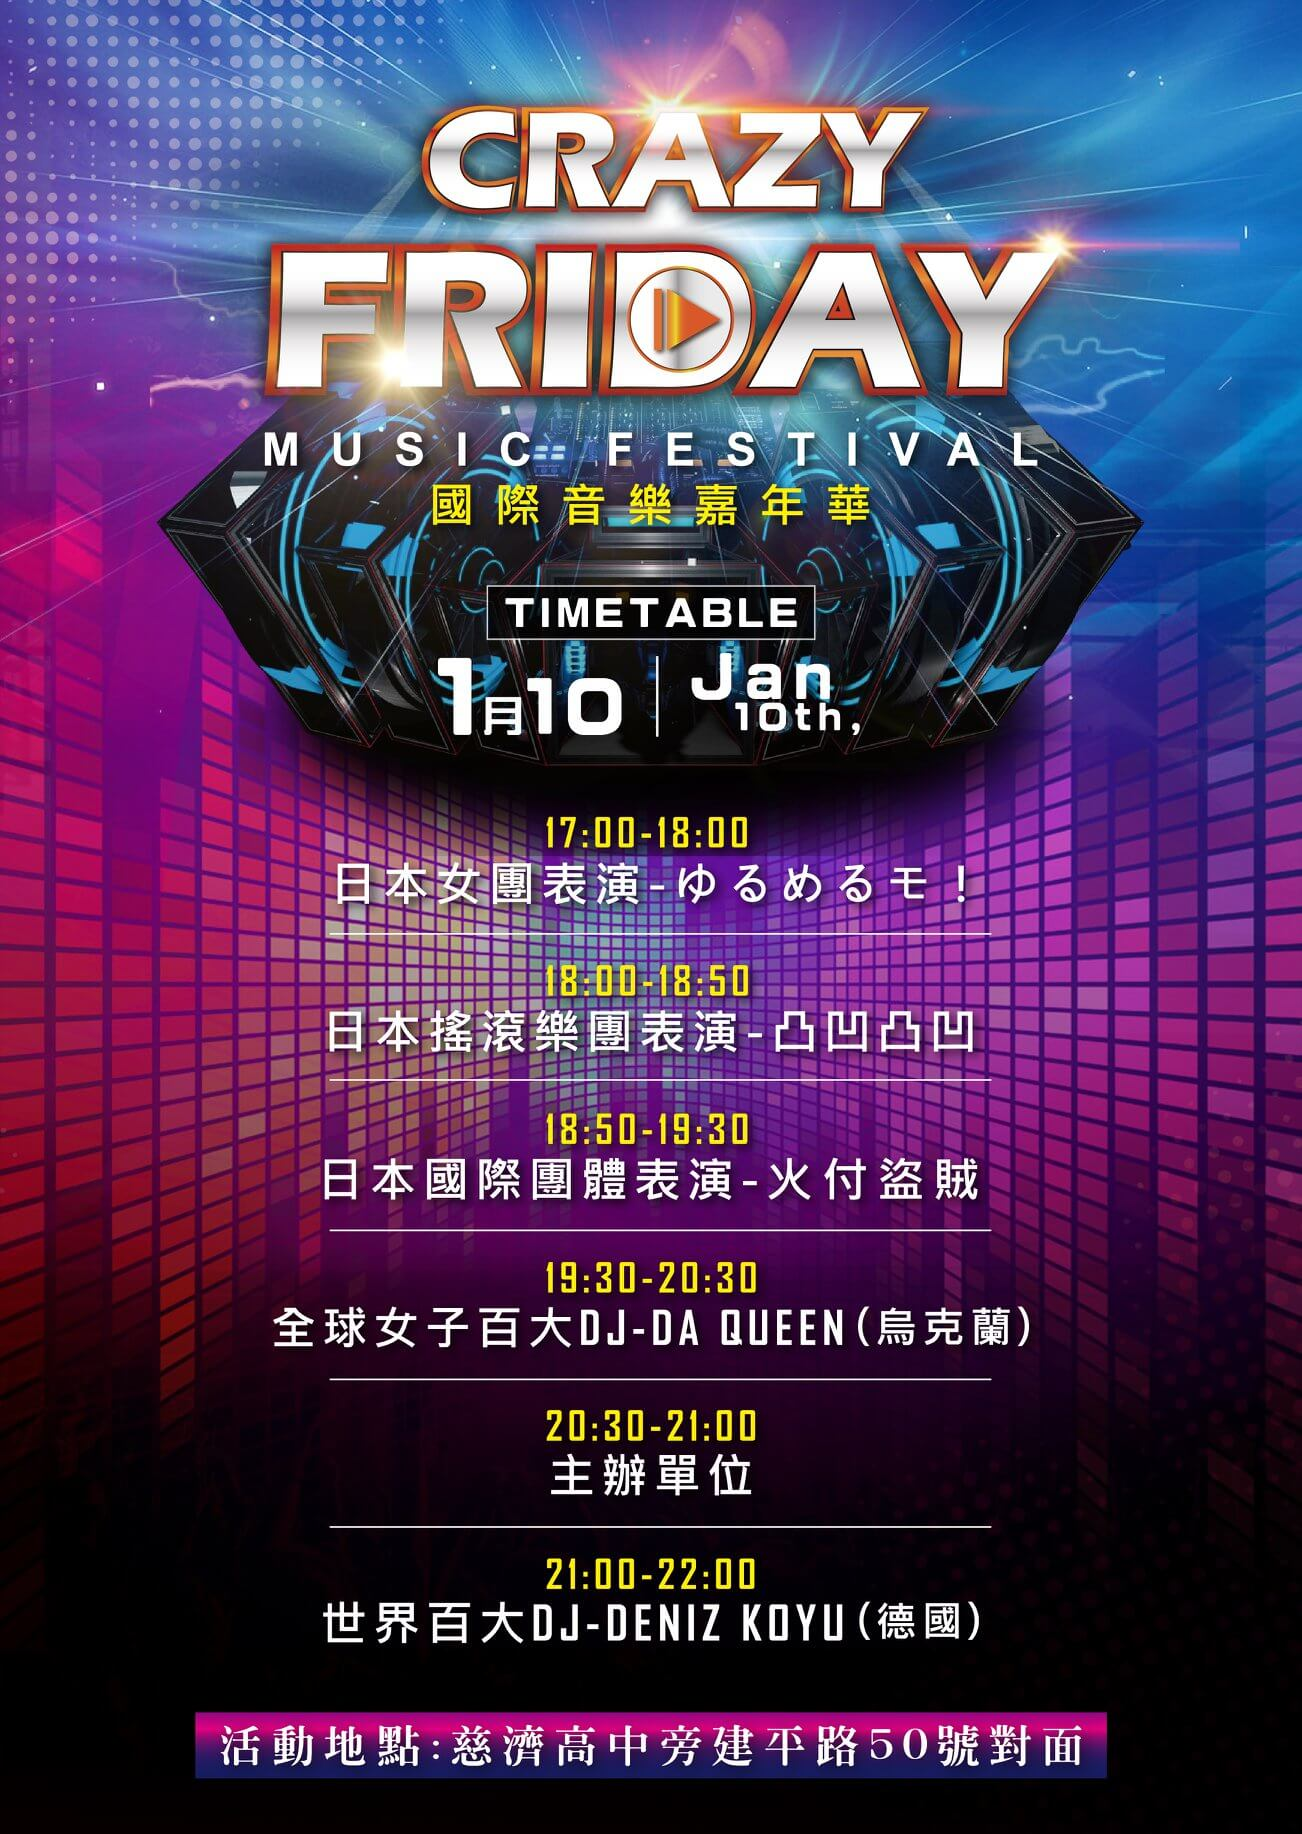 【出演情報】Crazy Friday Music Festival @台南